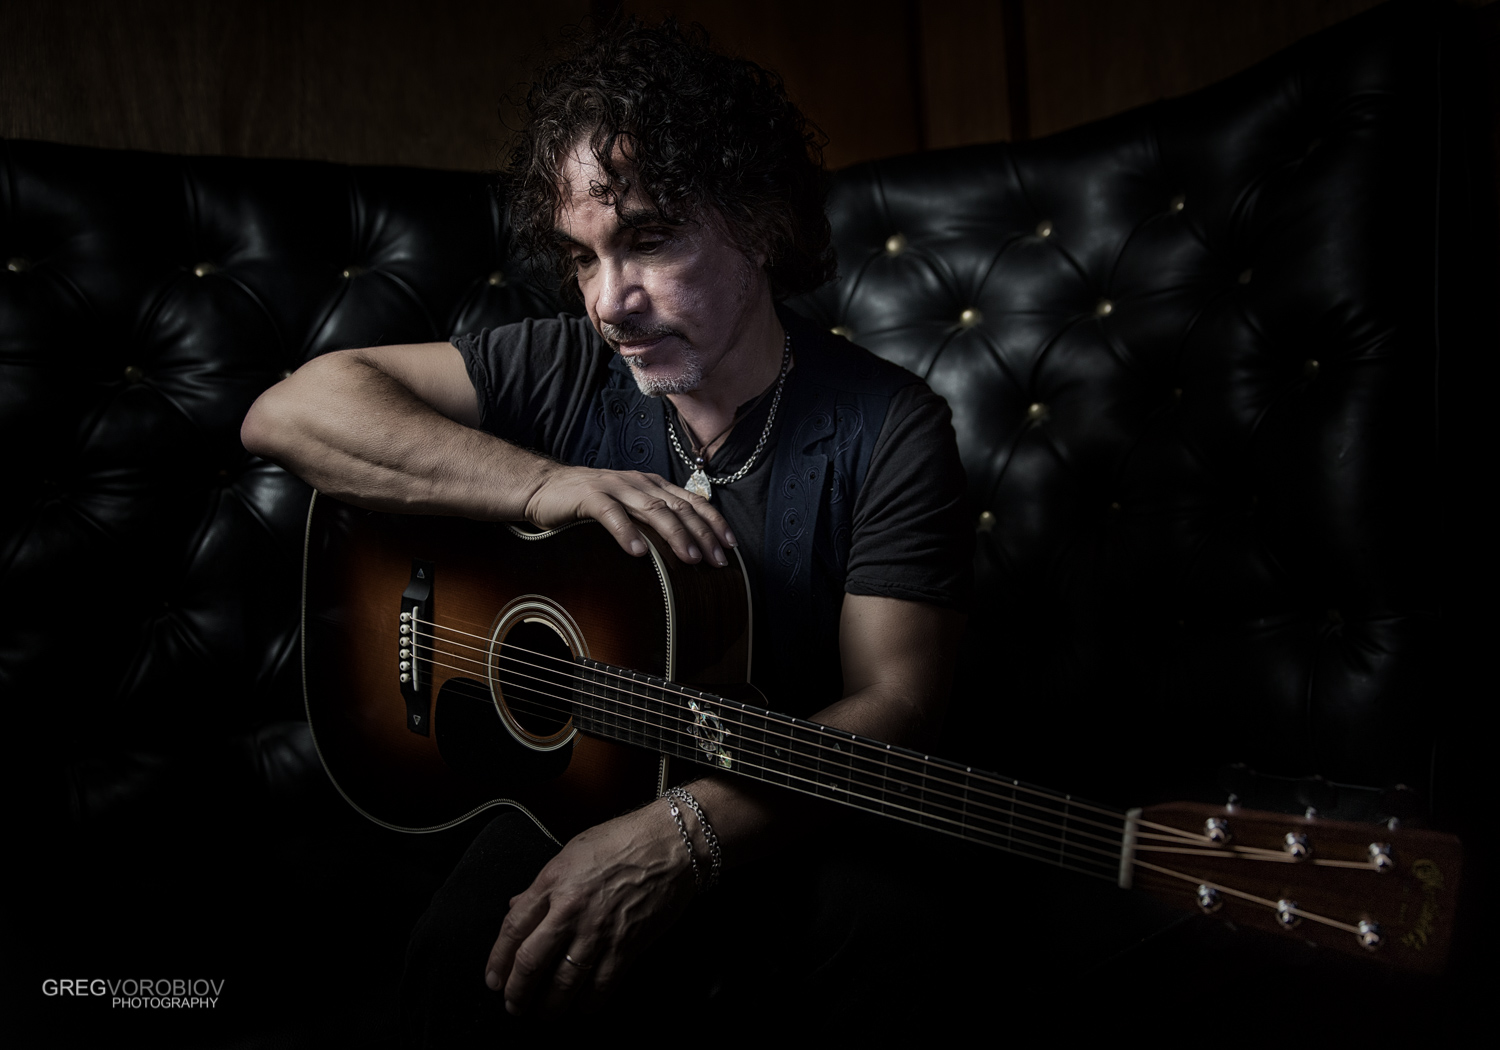 John Oates - Hall and Oates